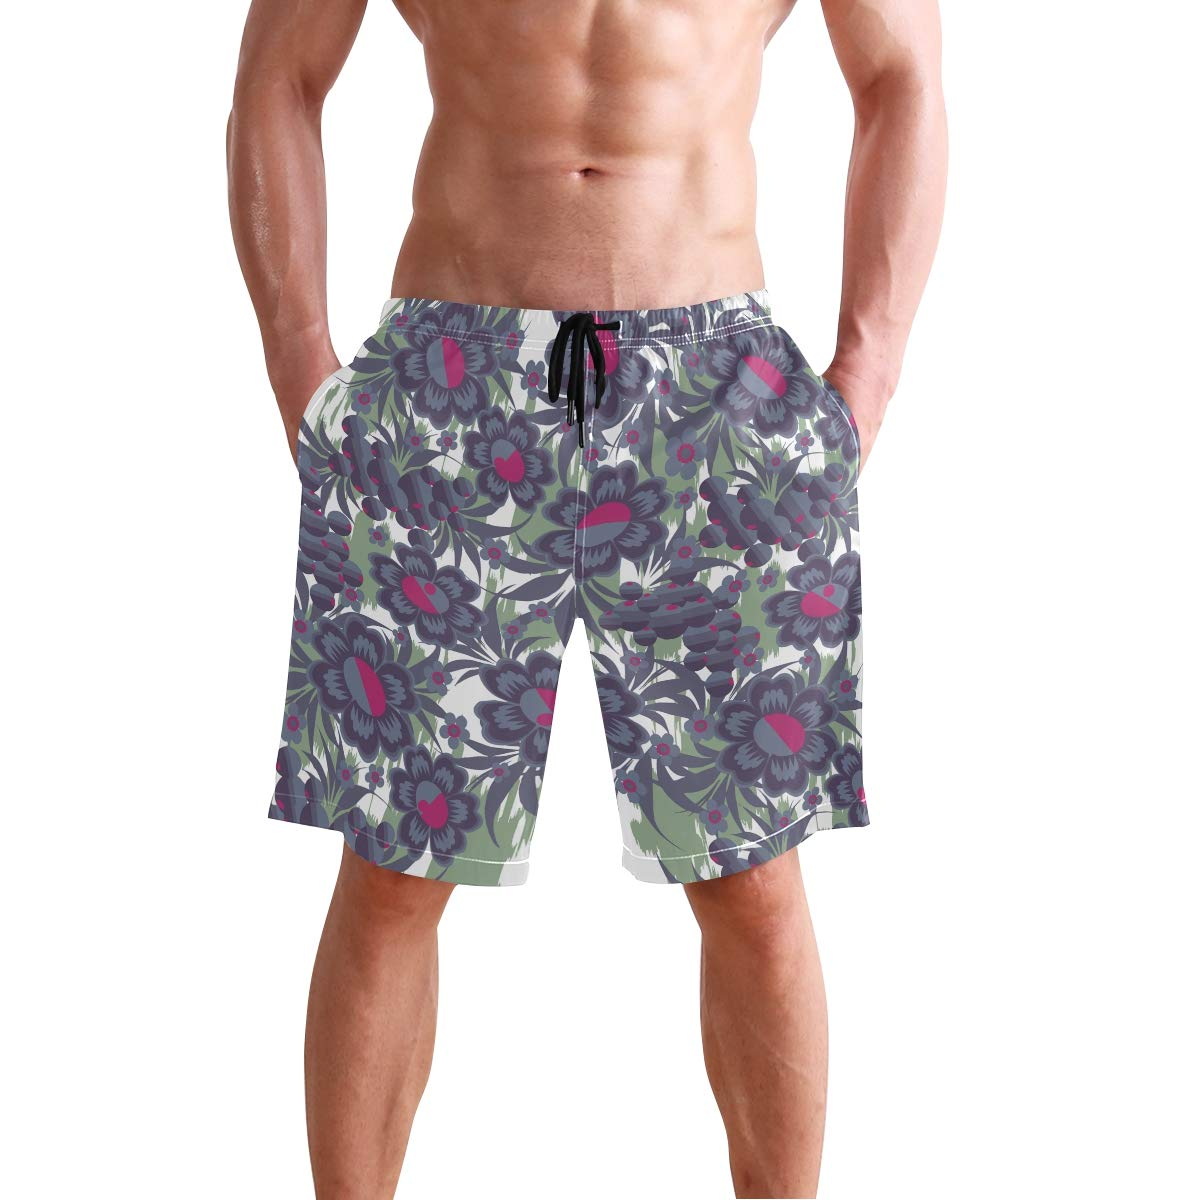 Humphy Albe Mens Seamless Flower Fruits Quick Dry Bathing Suits Beach Board Shorts